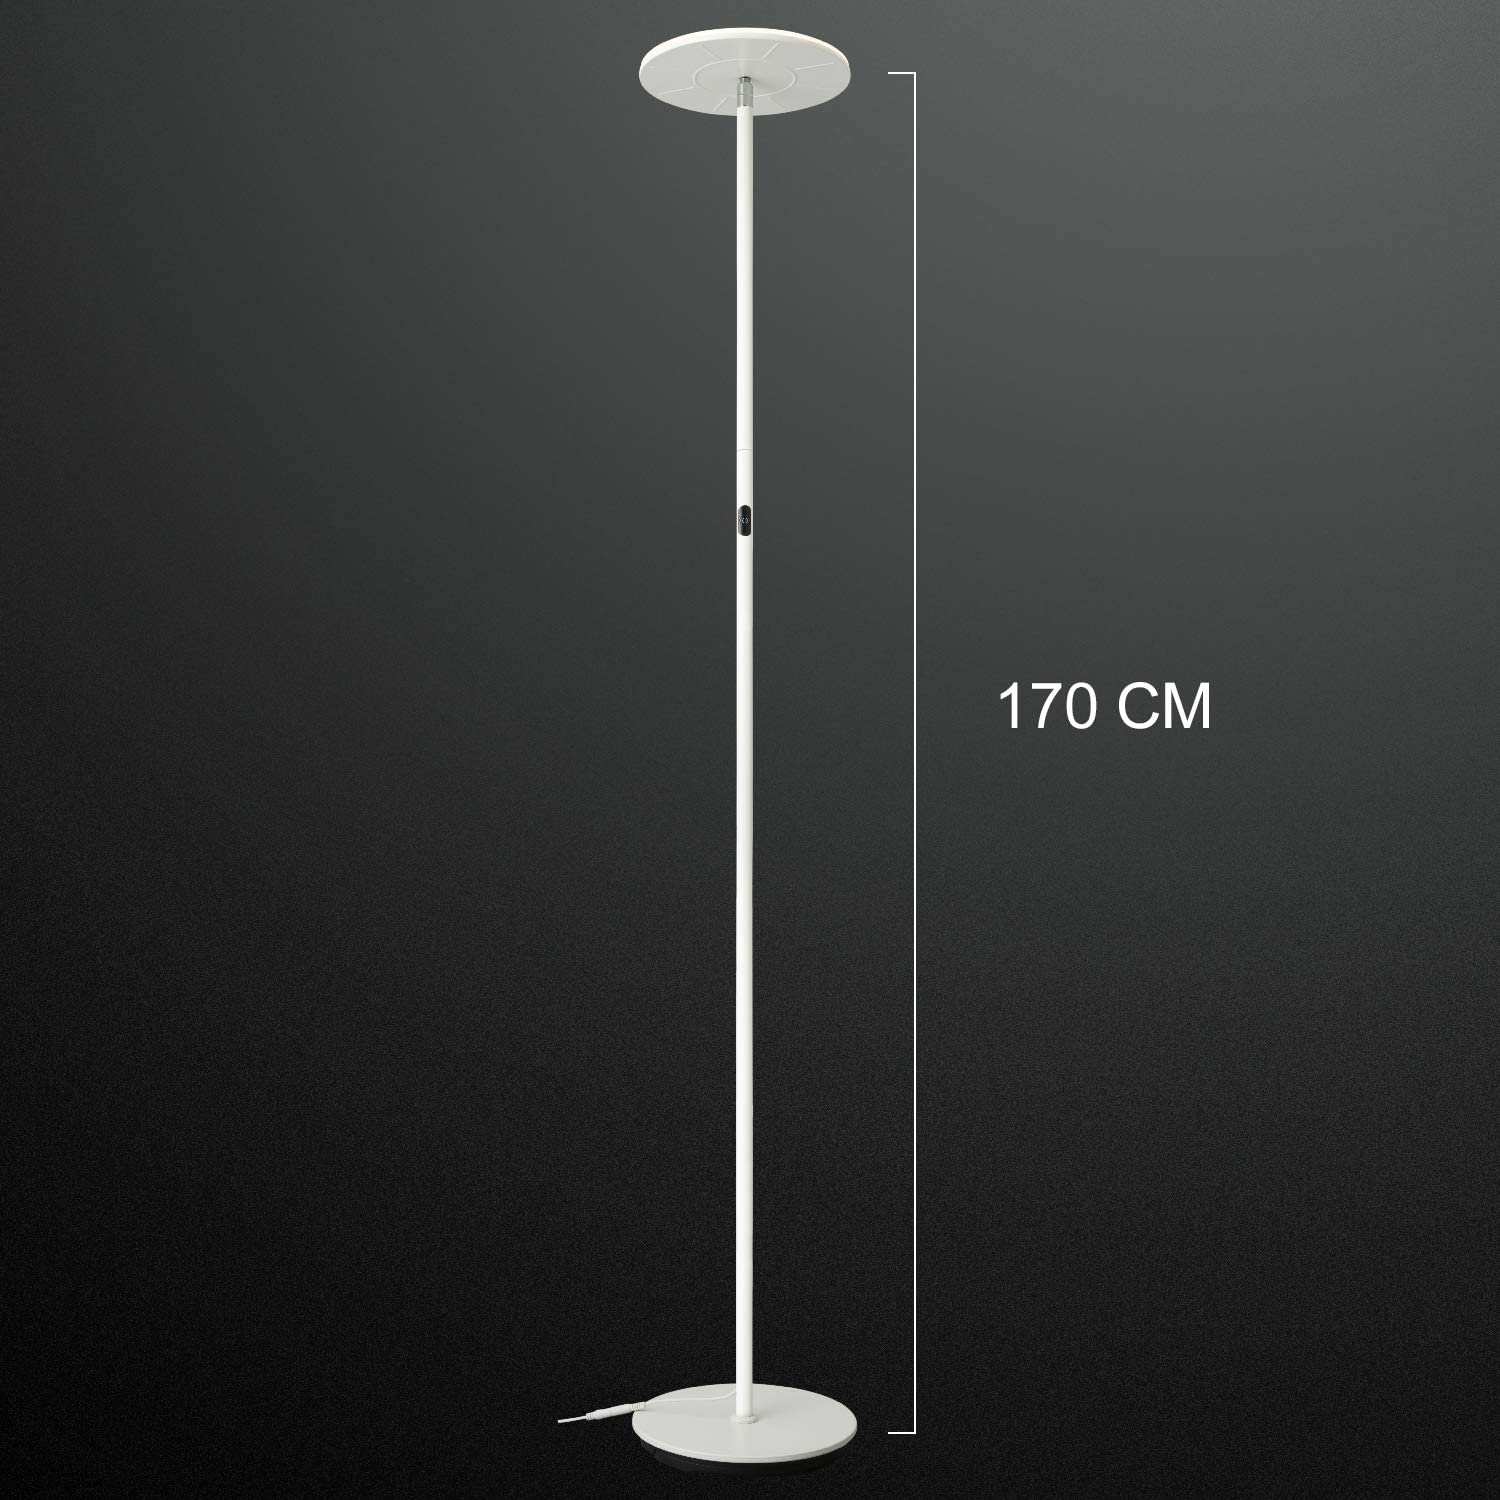 Stehlampe Led Sehr Hell